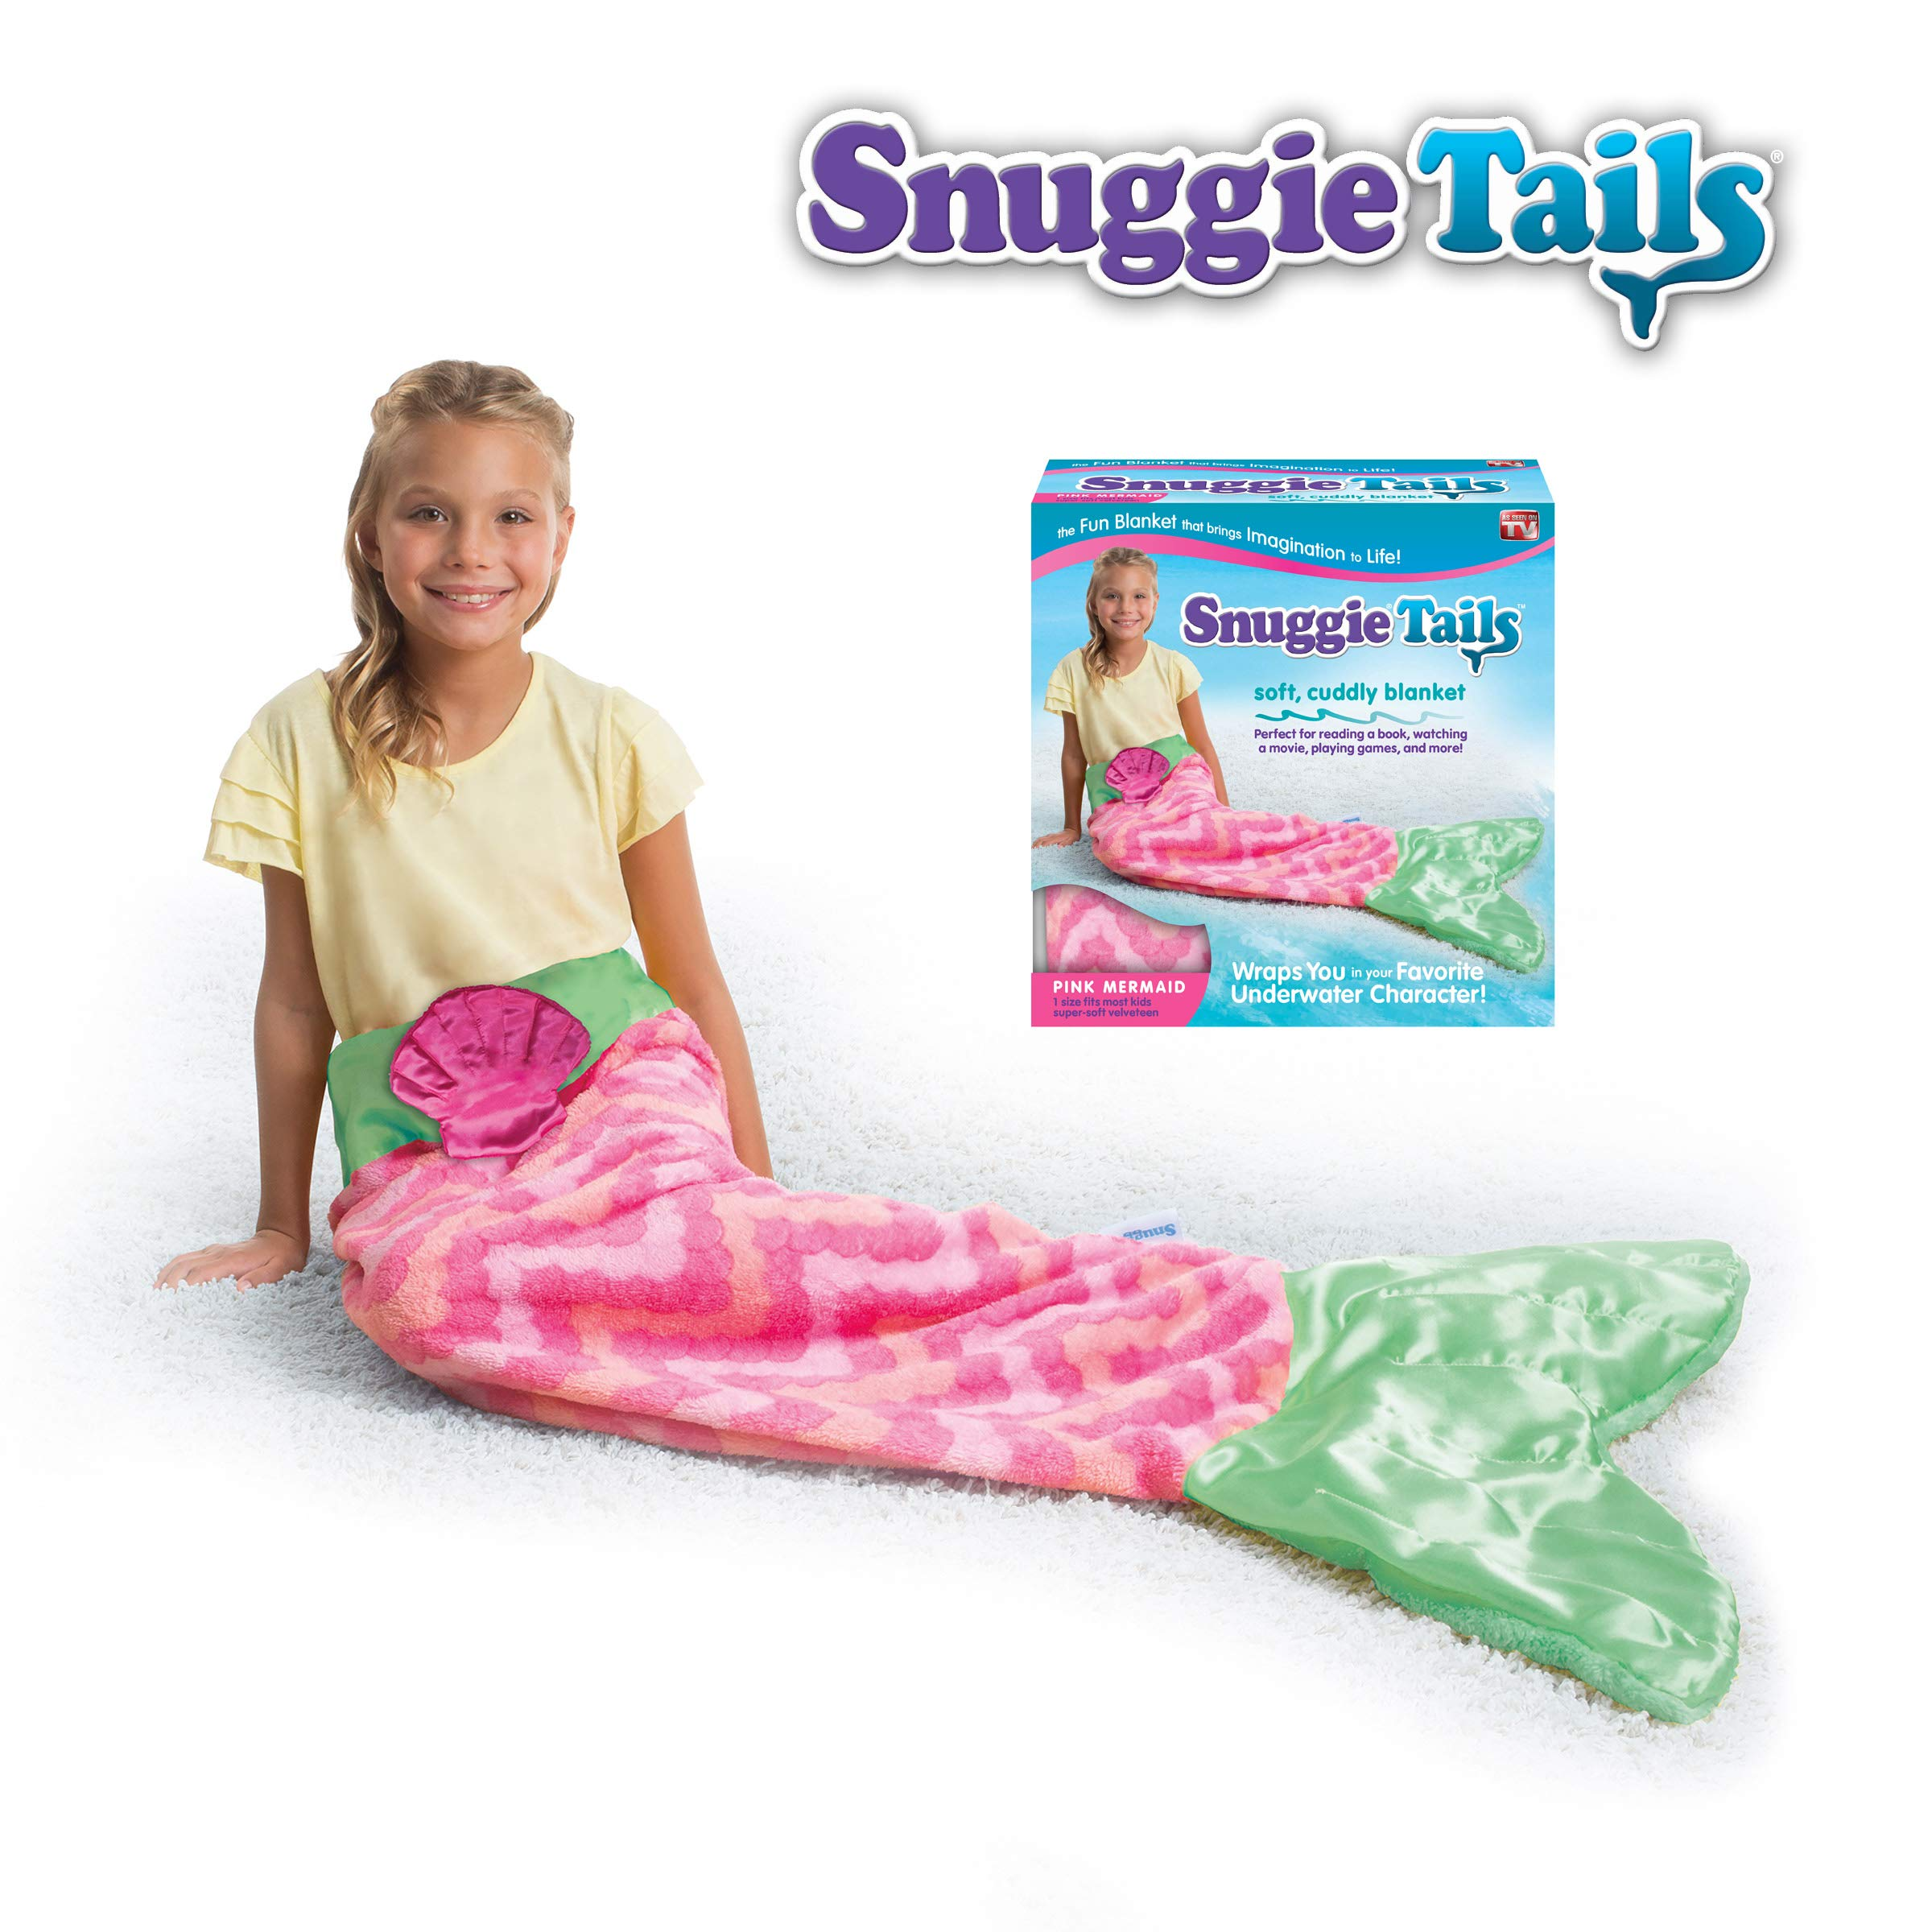 Snuggie Tails Allstar Innovations Mermaid Blanket for Kids (Pink), As Seen on TV by Snuggie Tails (Image #1)